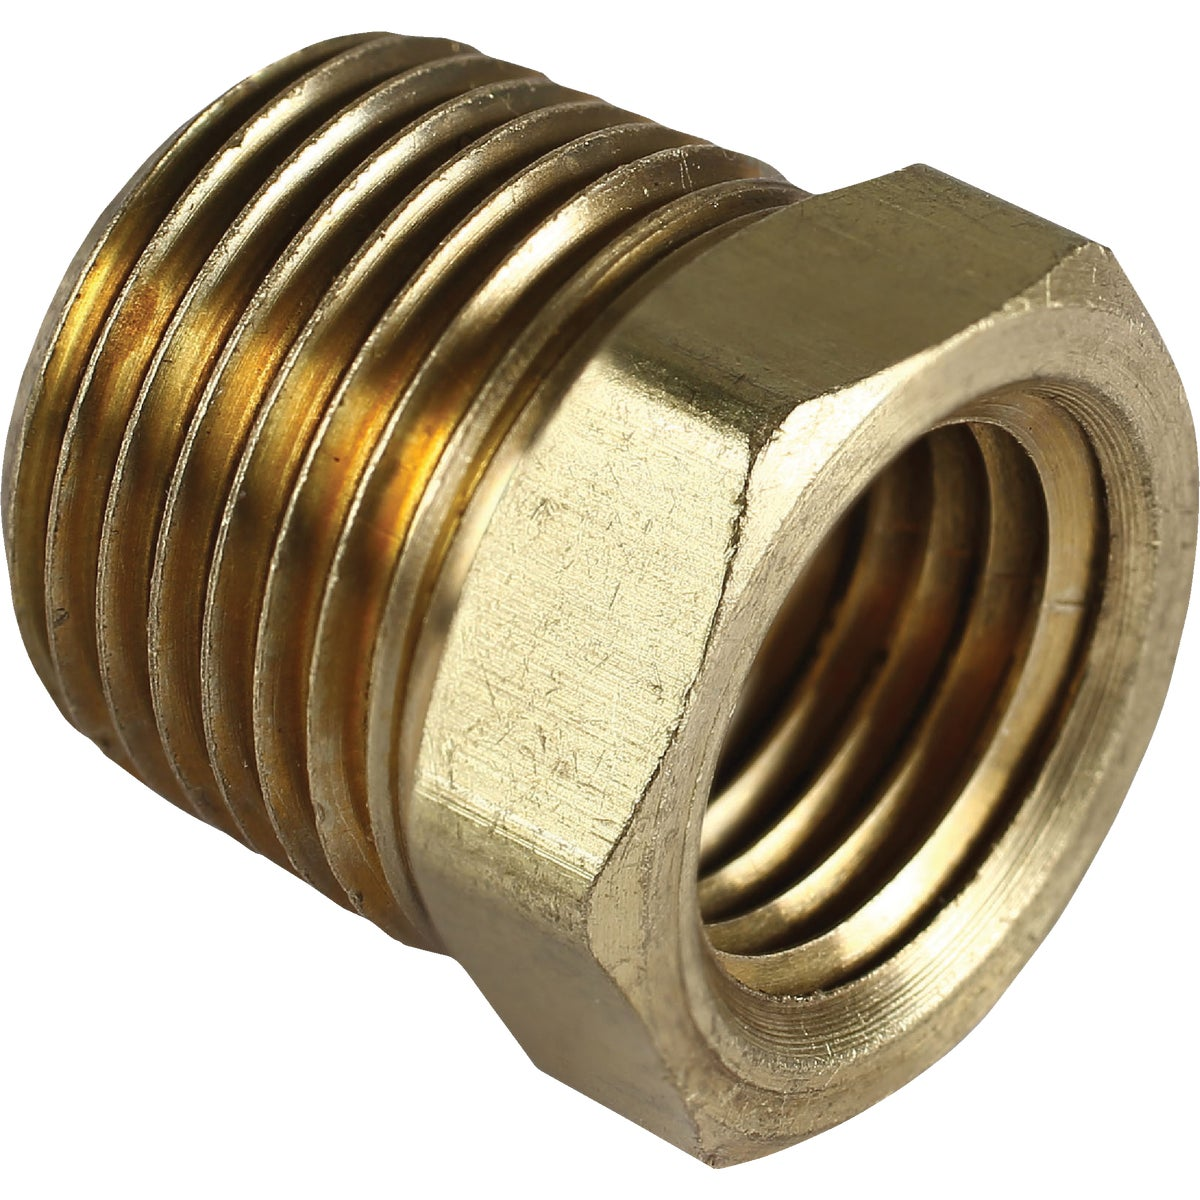 3/8MX1/4F REDUCER - AW-0023-0017 by Mi T M Corp